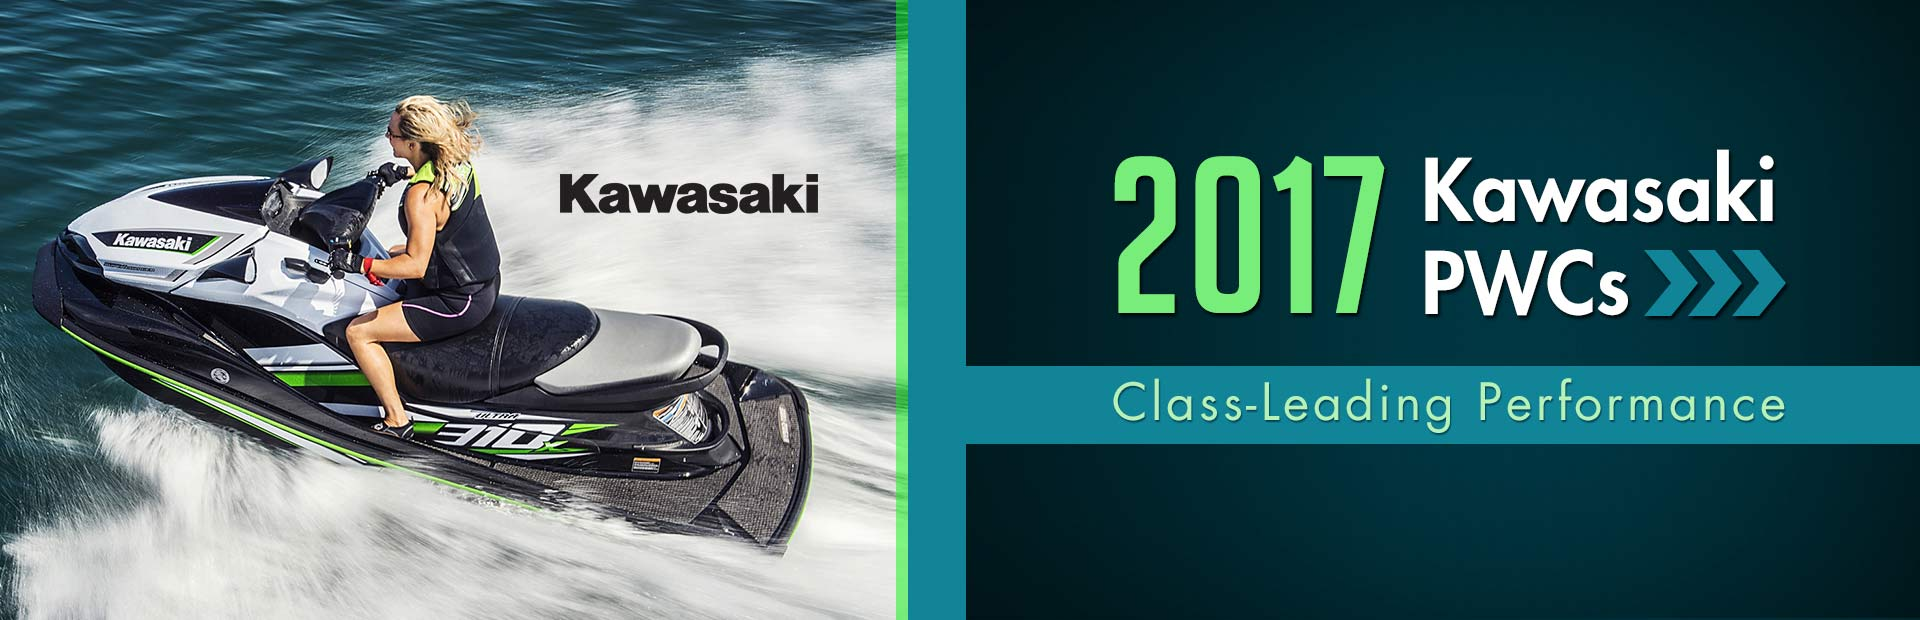 2017 Kawasaki PWCs: Click here to view the models.